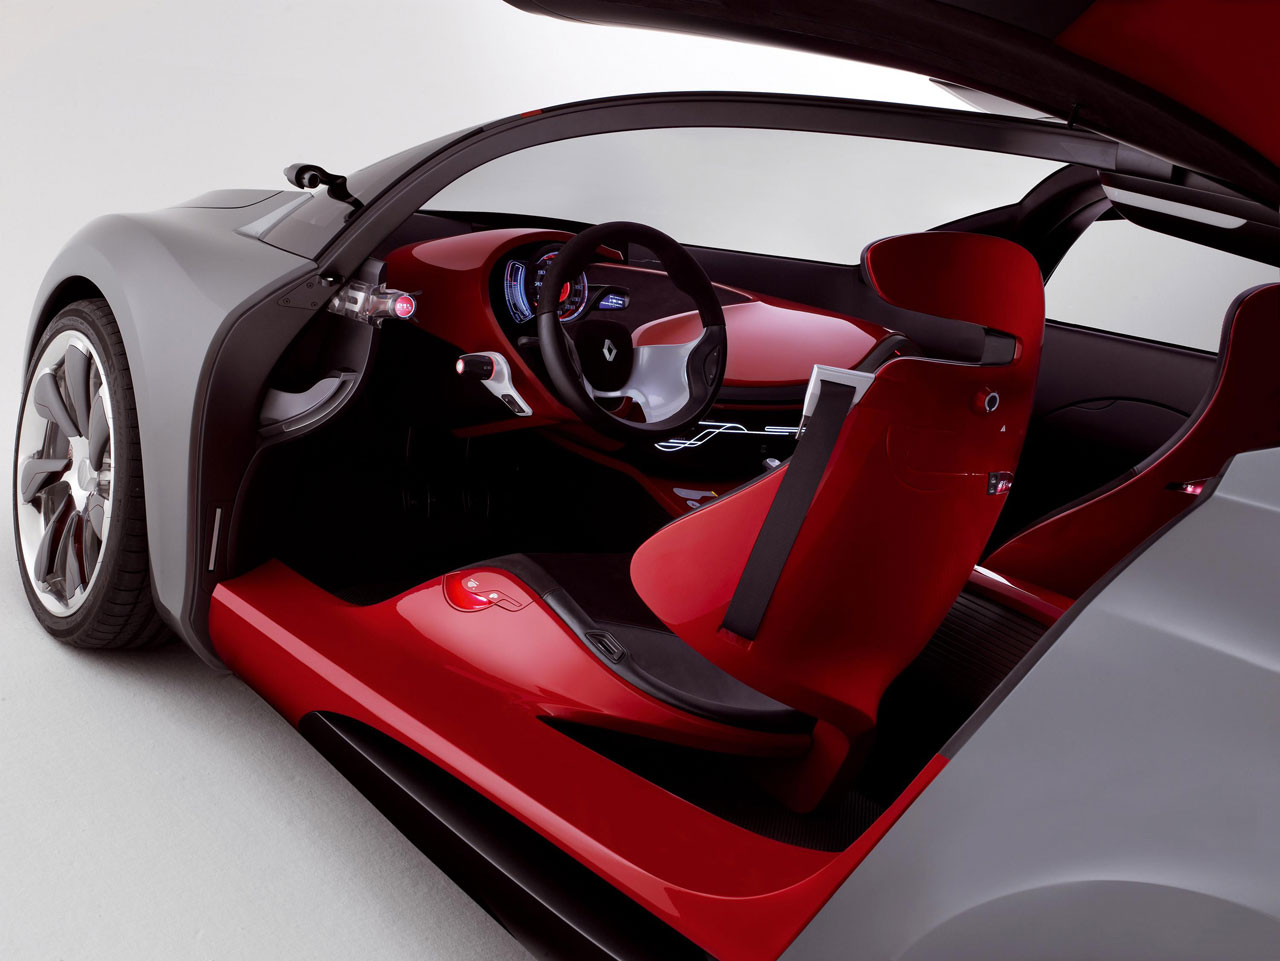 Renault Megane Coupe Interior Megane Coupe Concept Renault